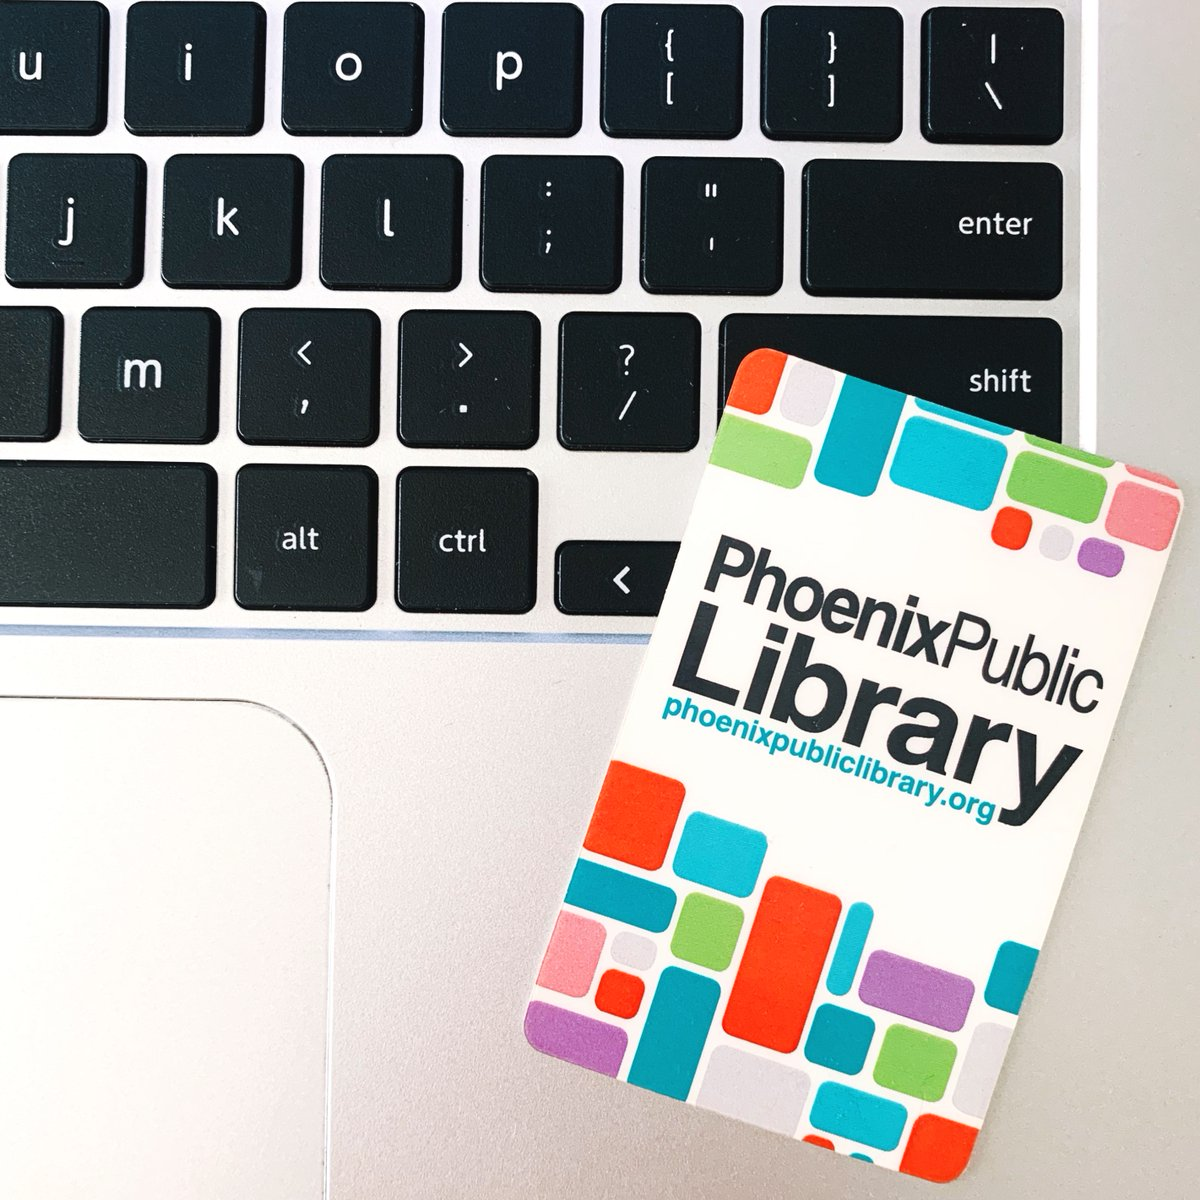 Visit the #eLibrary 24/7 from your home! 📱 Sign up for an eCard for instant digital access to our online resources! (Have a #PhoenixPublicLibrary card? You already have access!) Use your #eCard to enjoy books, classes, music & more. Get an eCard now: